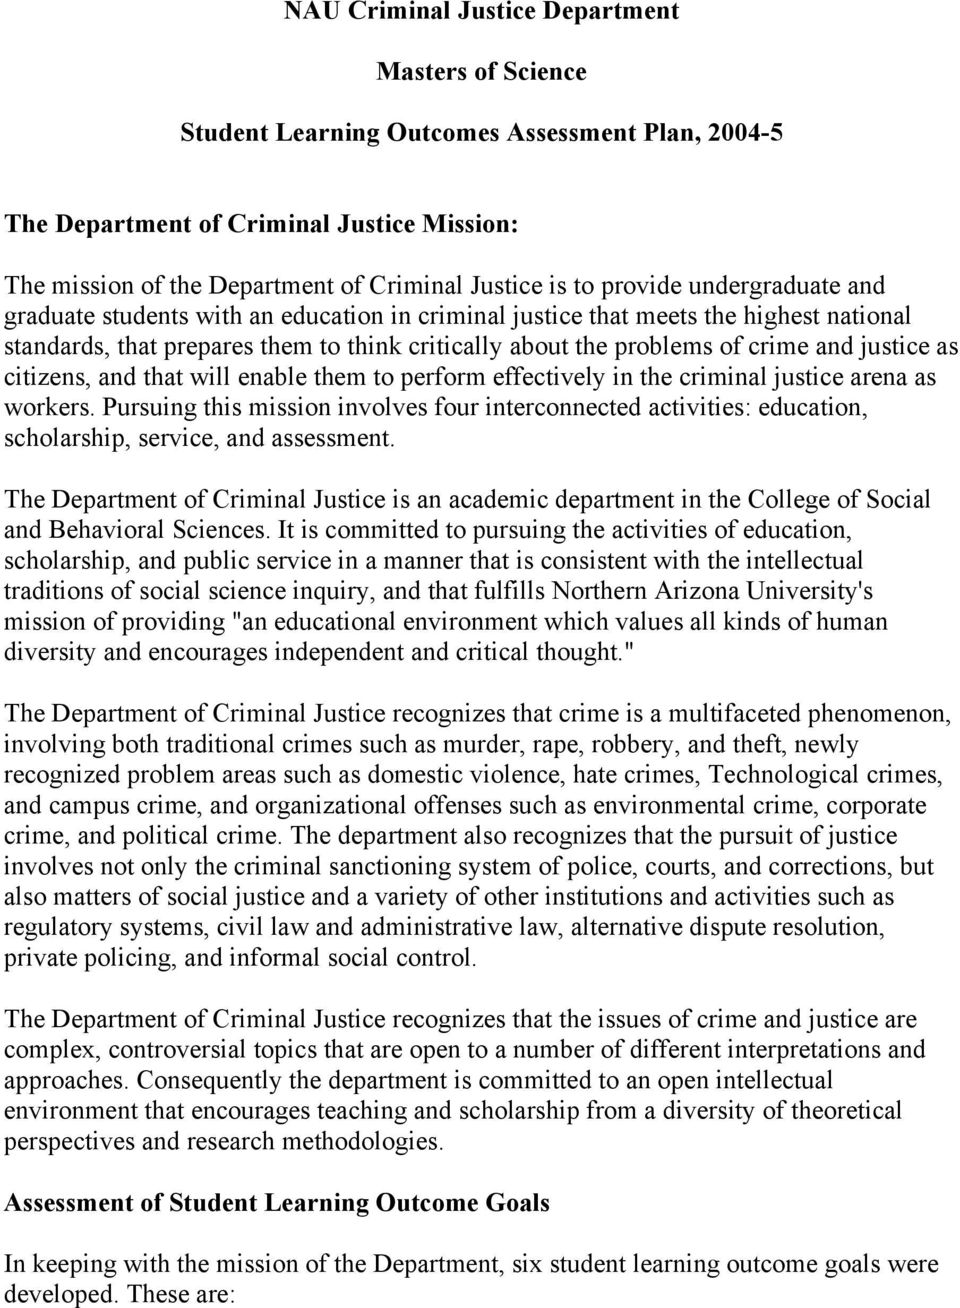 justice as citizens, and that will enable them to perform effectively in the criminal justice arena as workers.